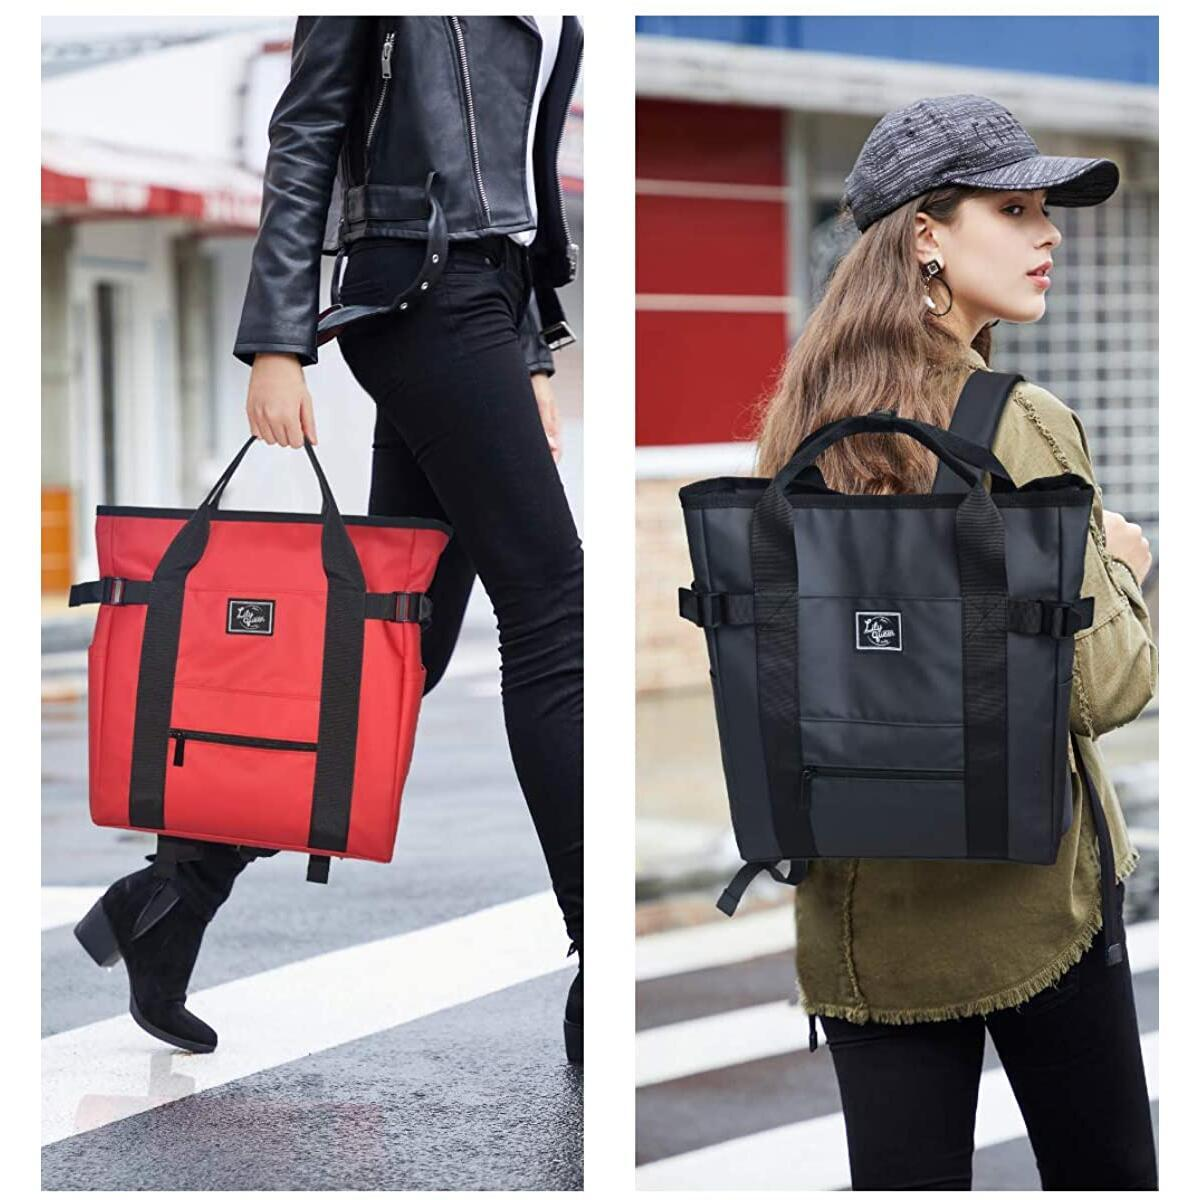 Lily Queen Casual Lightweight Handbag Fashion Tote Backpacks Waterproof Classic Daypack Bag for Women